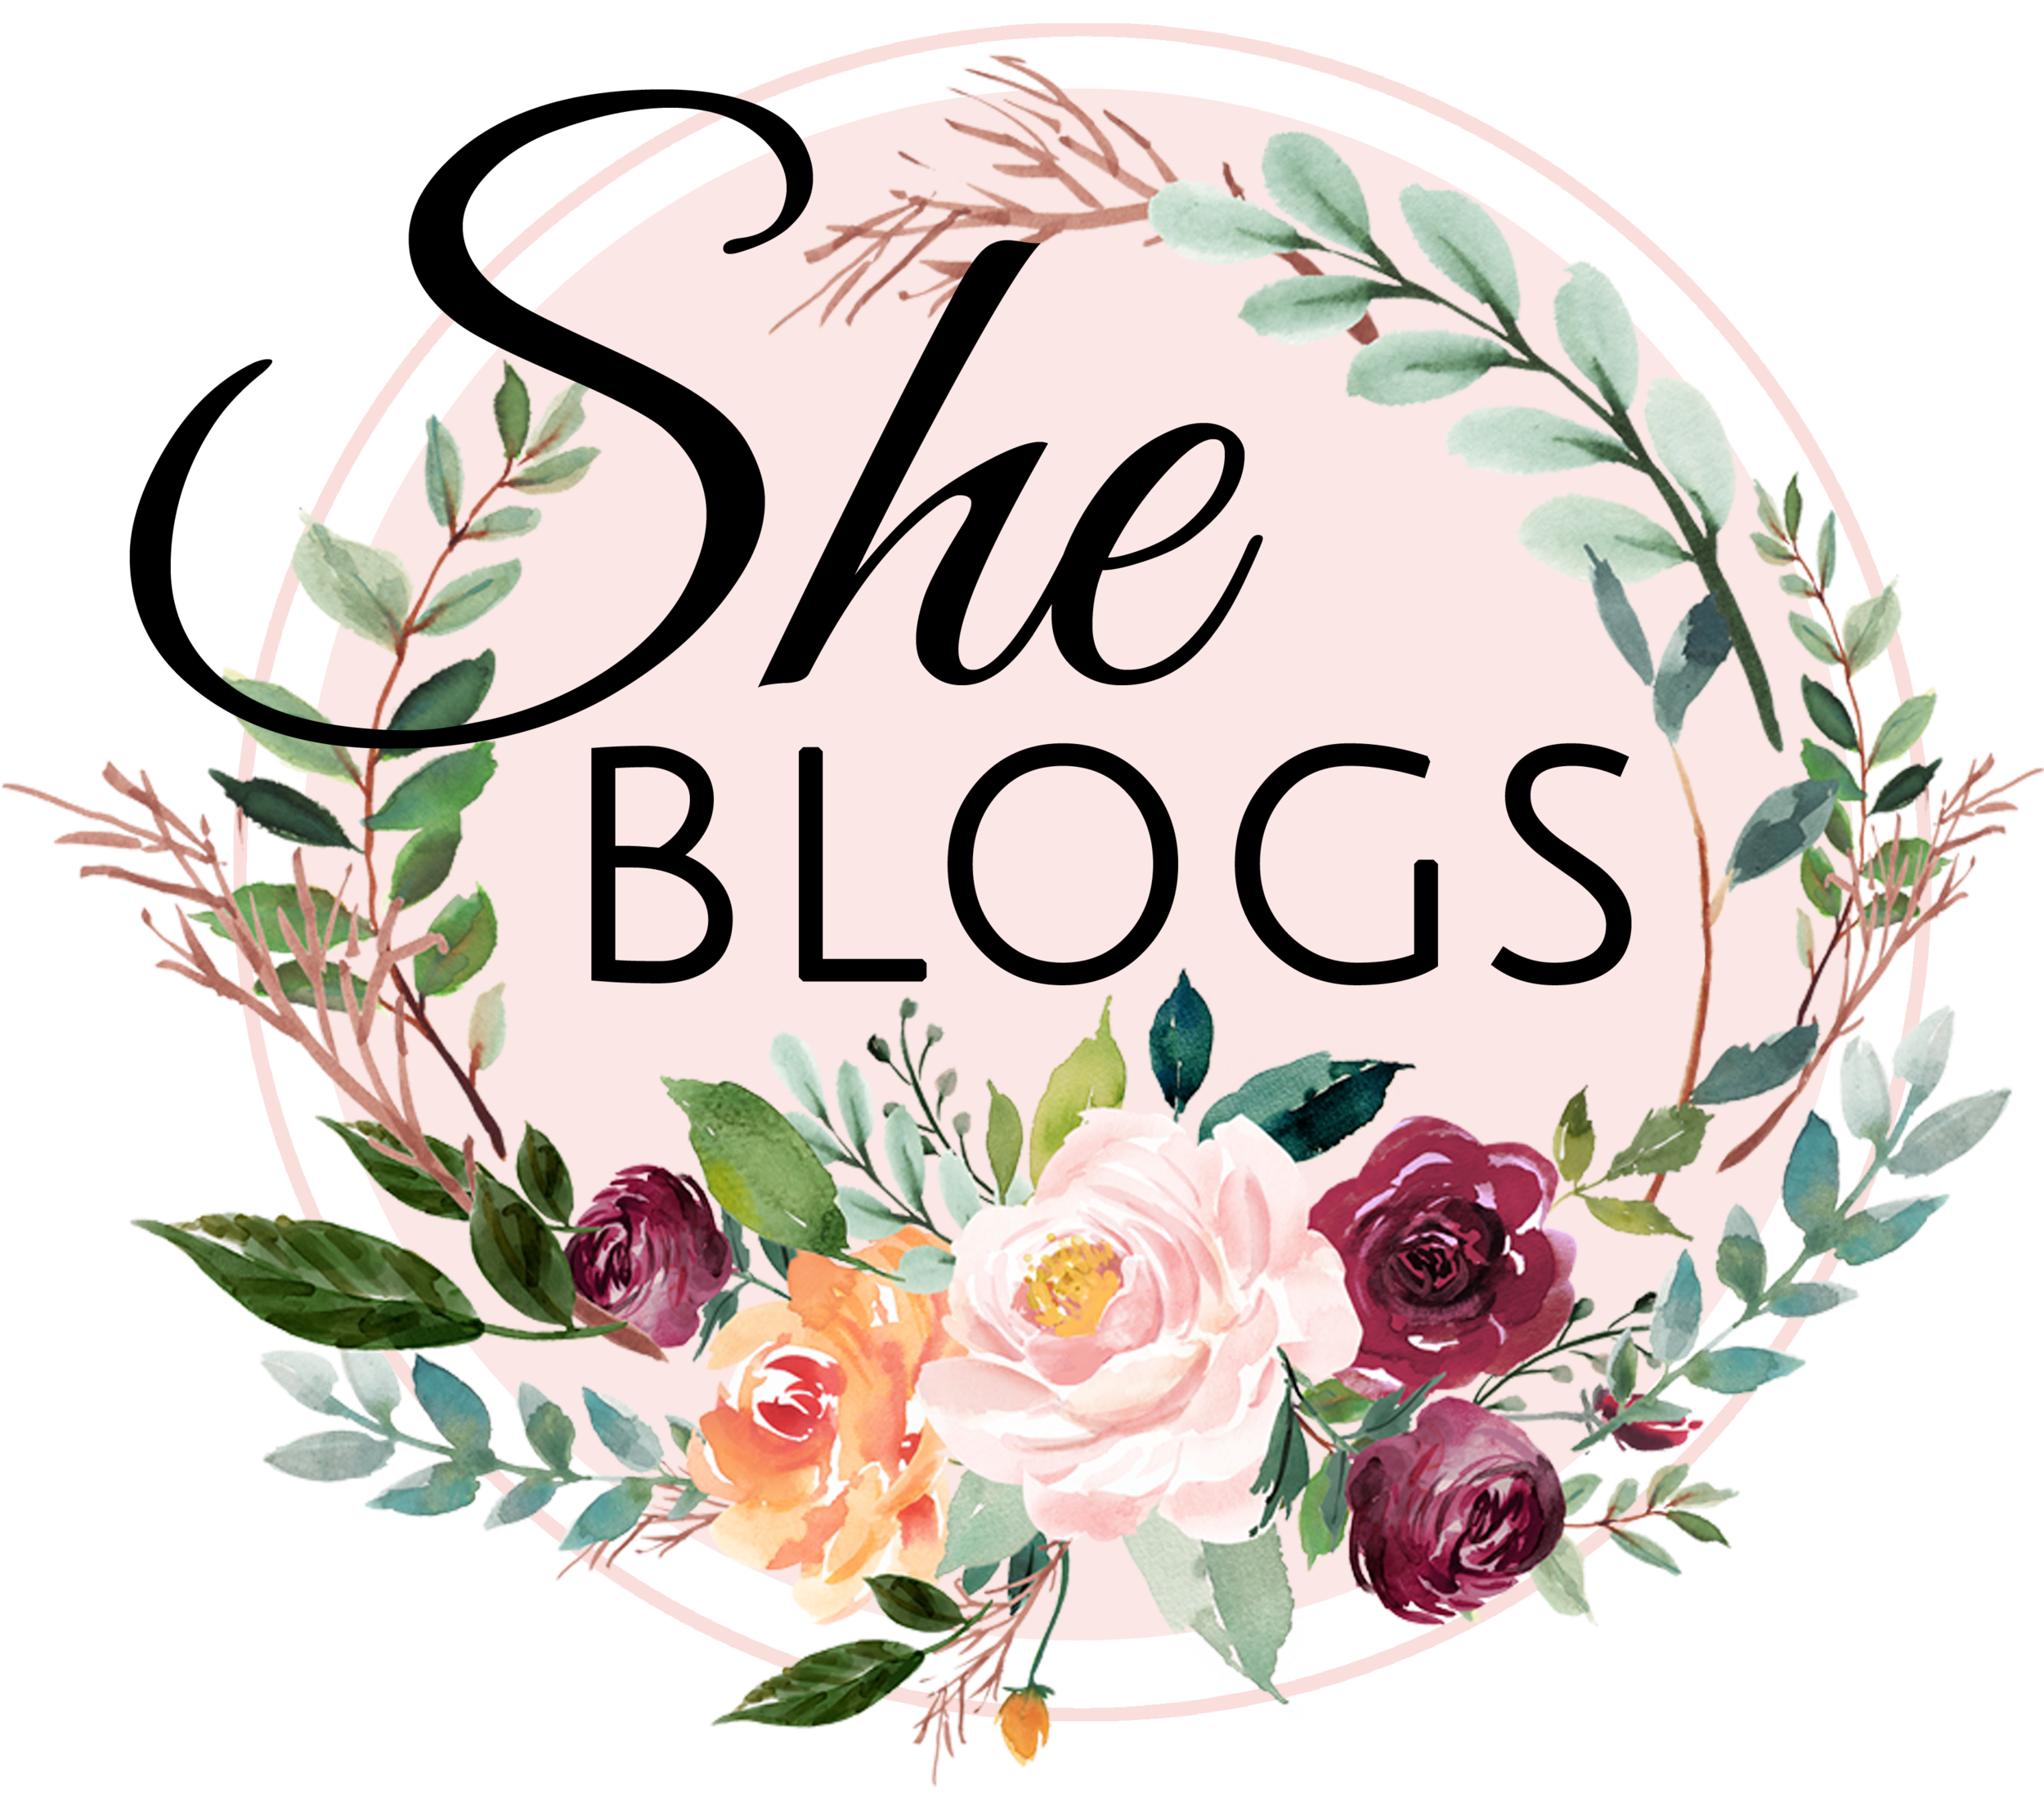 casey.she.blogs.floral.circle.png